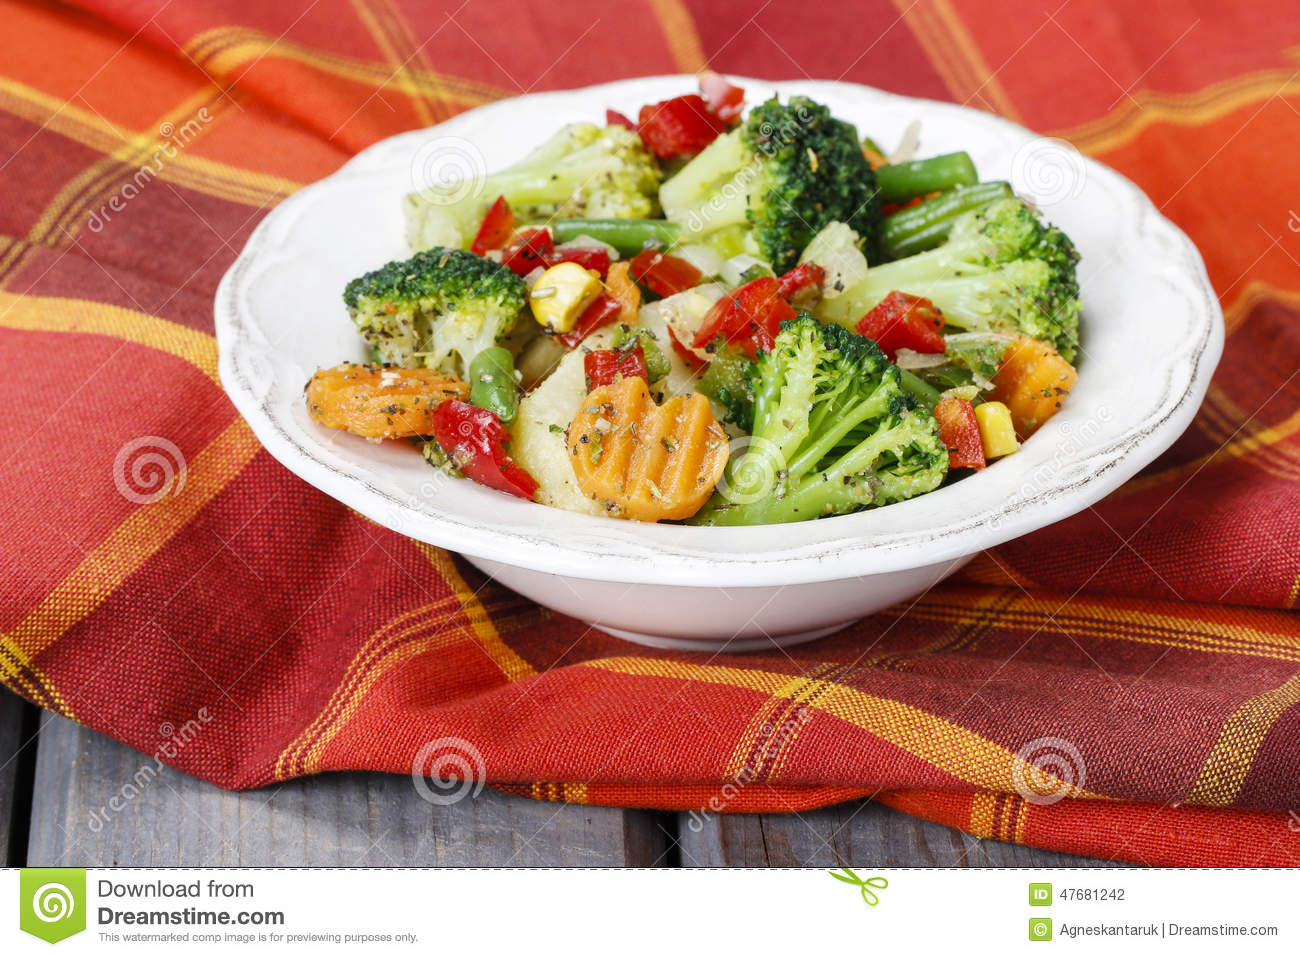 how to make vegetable salad for diet